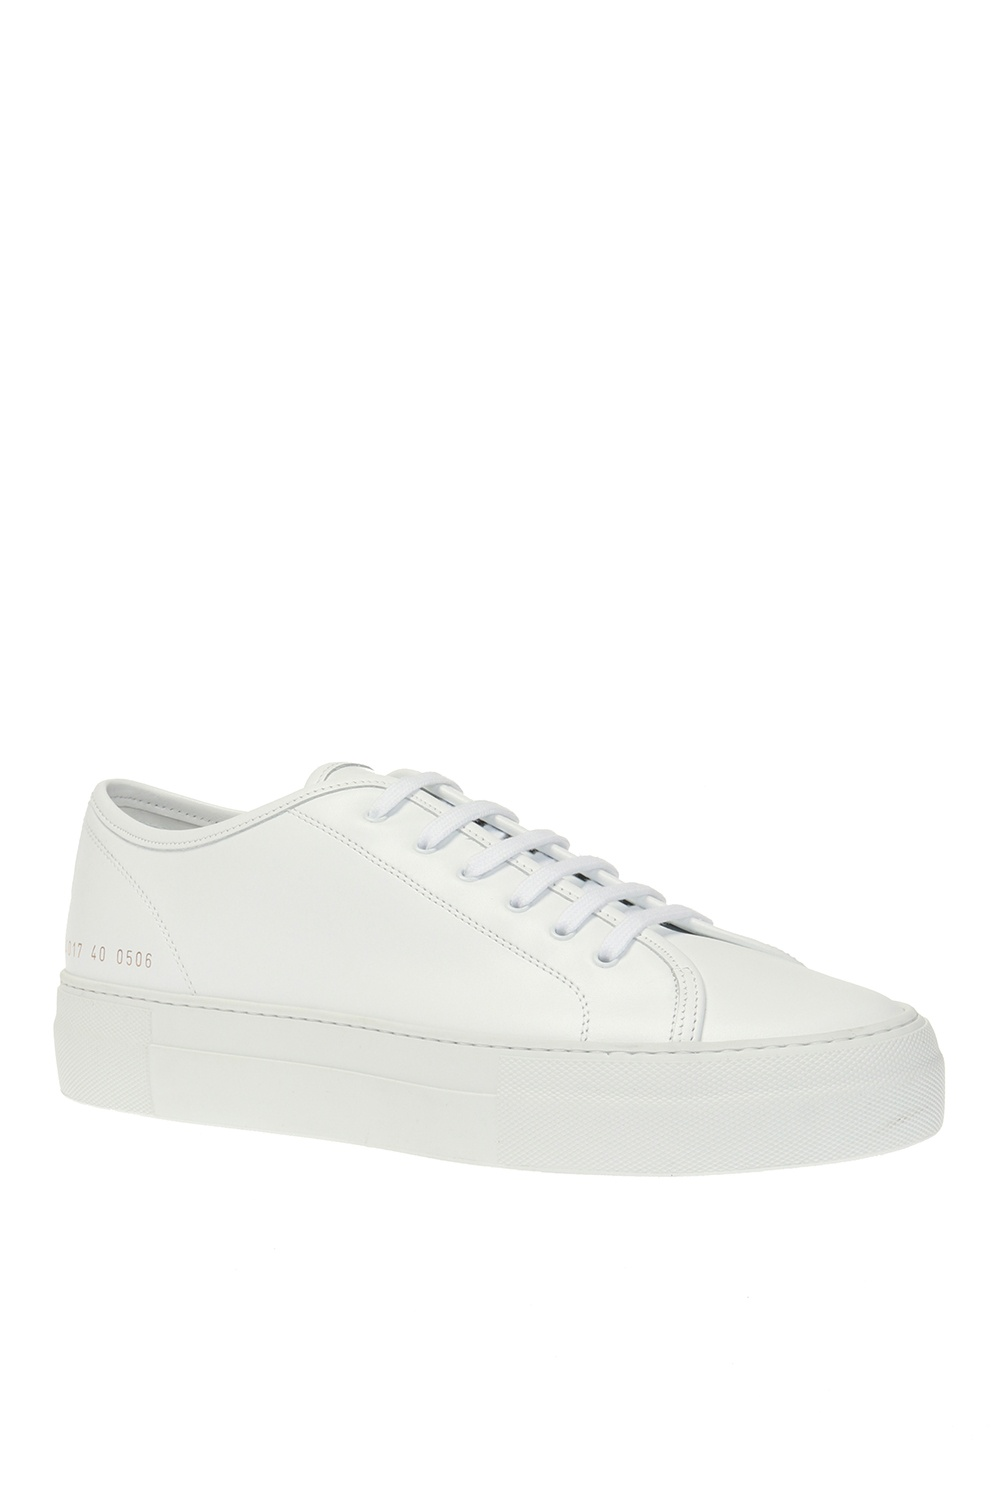 Common Projects Buty sportowe 'Tournament'